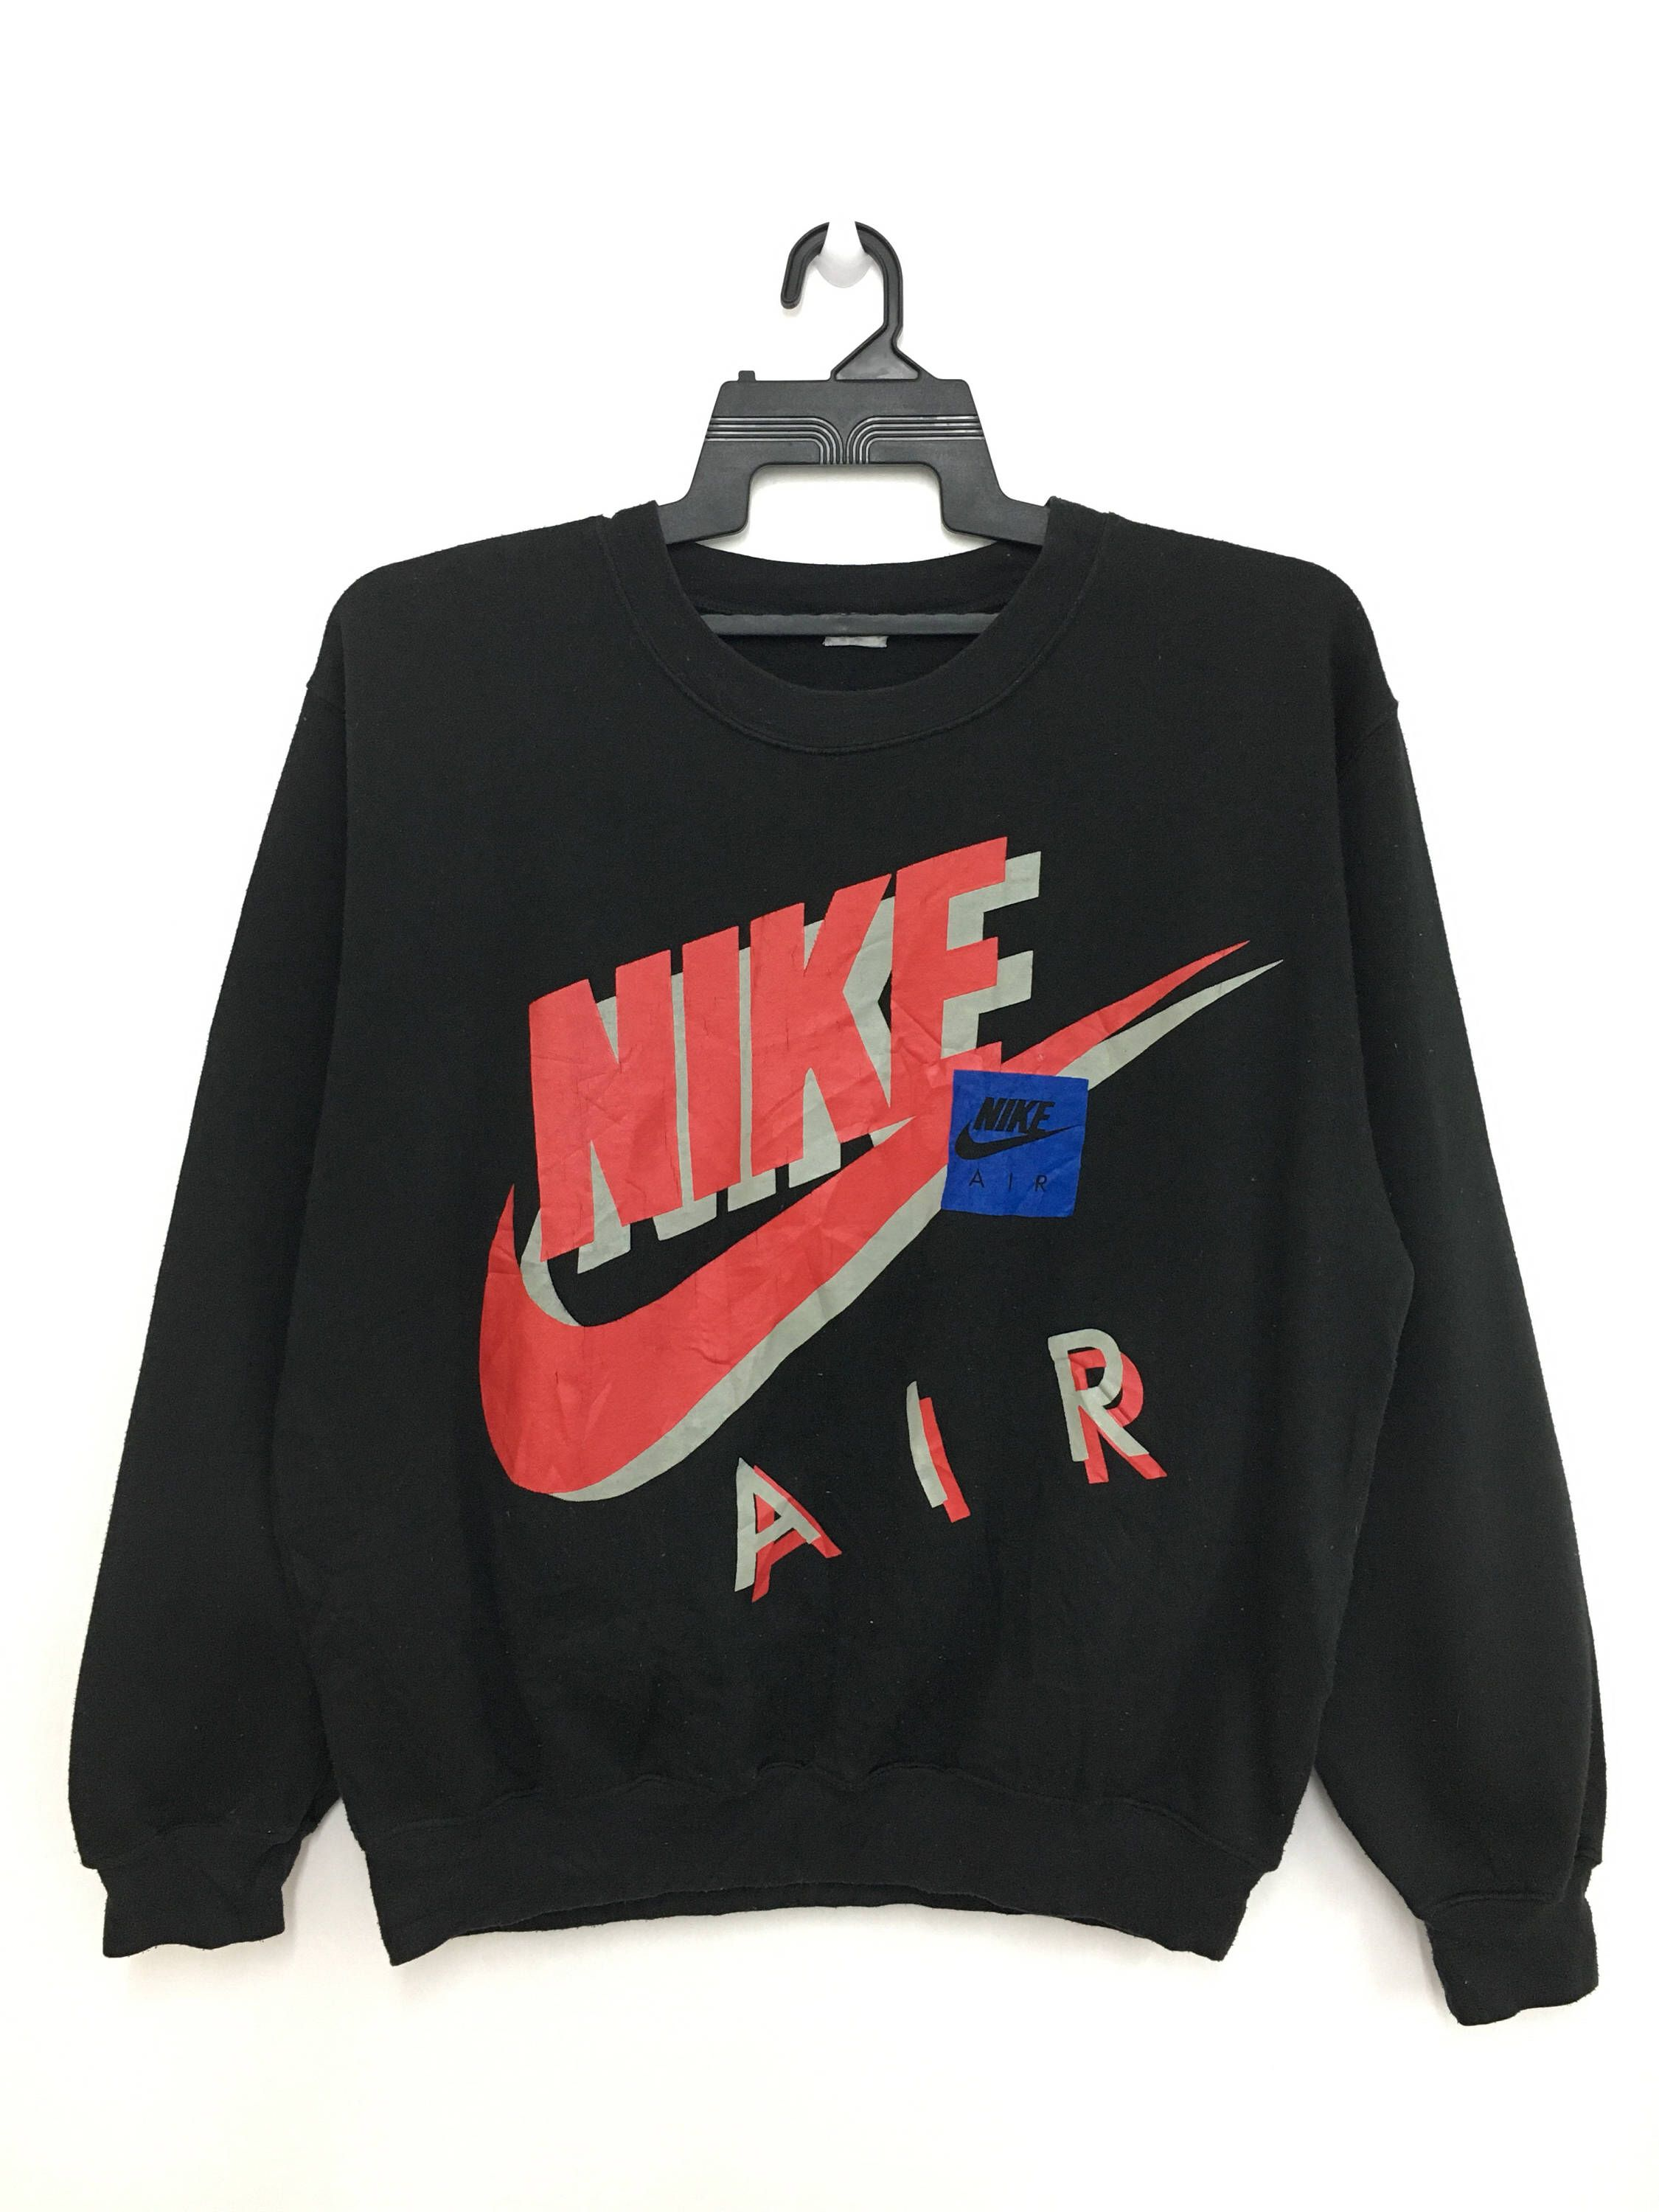 0b4f7b98 Excited to share this item from my #etsy shop: Rare!! Vintage 90's NIKE AIR  Sweatshirt Big Logo Jumper Black Color #clothing #hoodie #black #sweater ...